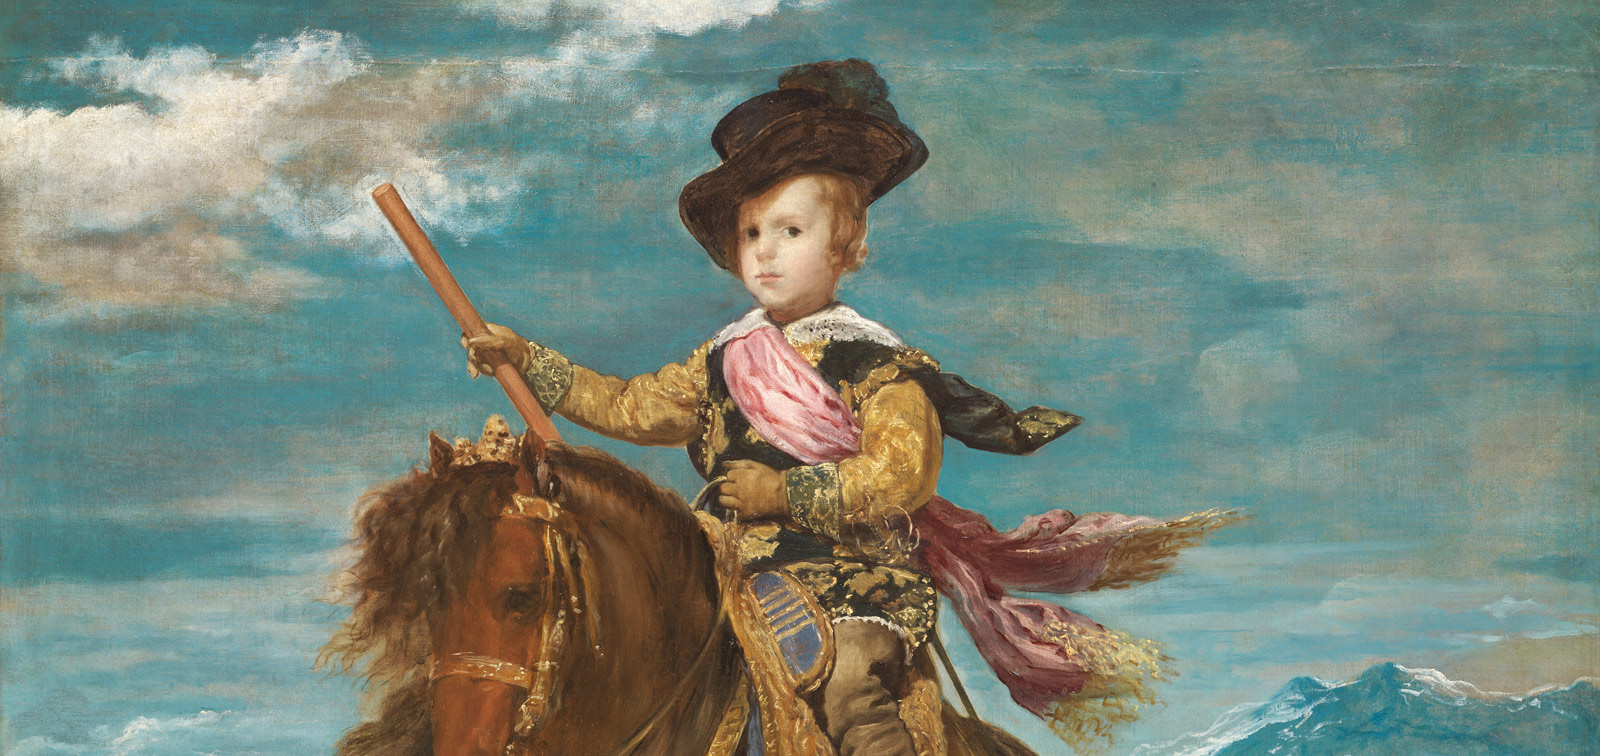 Velázquez and the Celebration of Painting: the Golden Age in the Museo del Prado